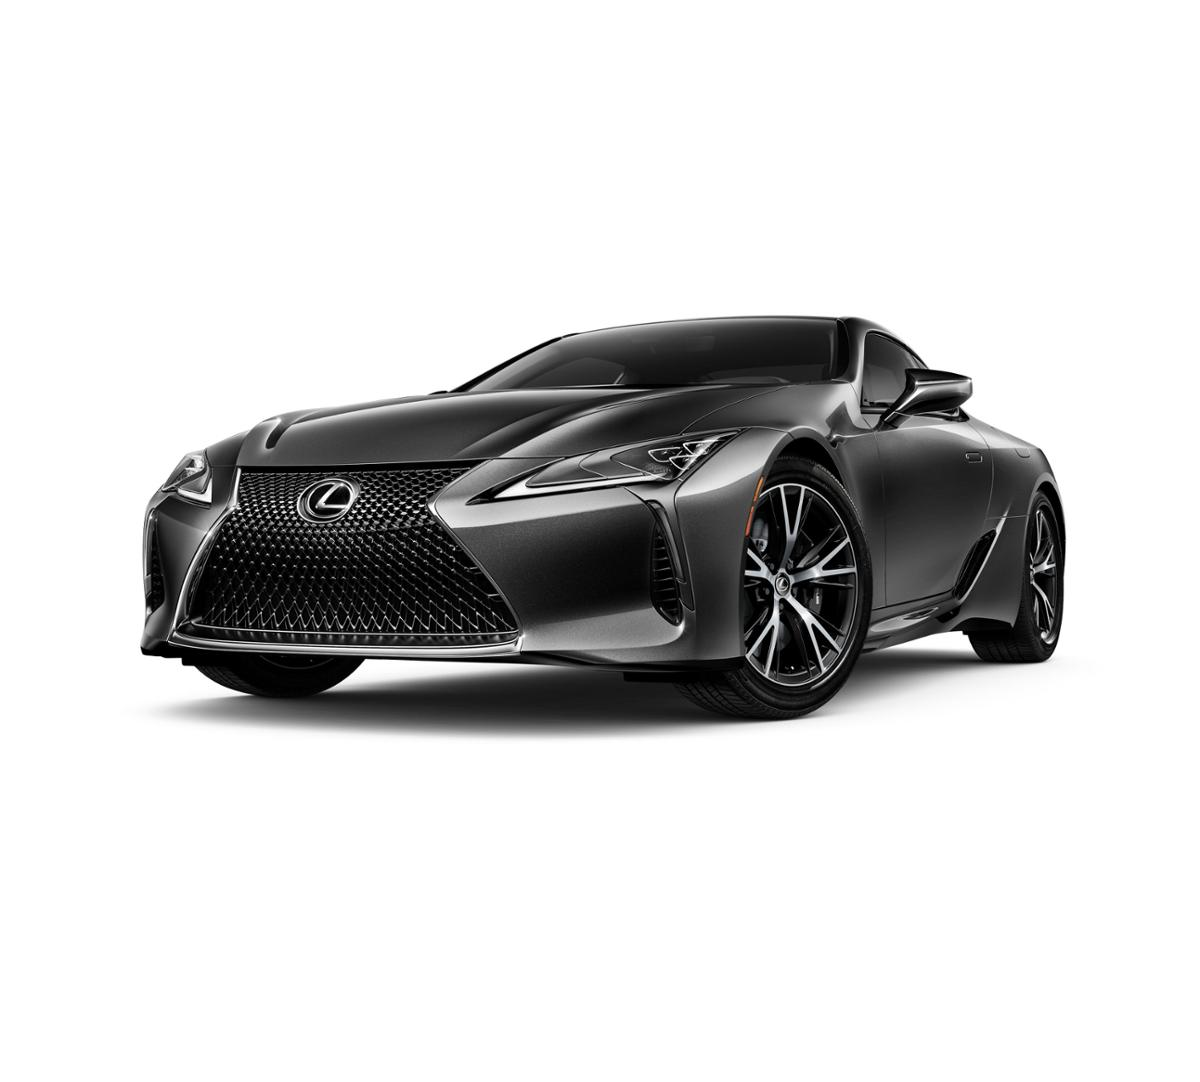 2019 Lexus LC 500 Vehicle Photo in El Monte, CA 91731